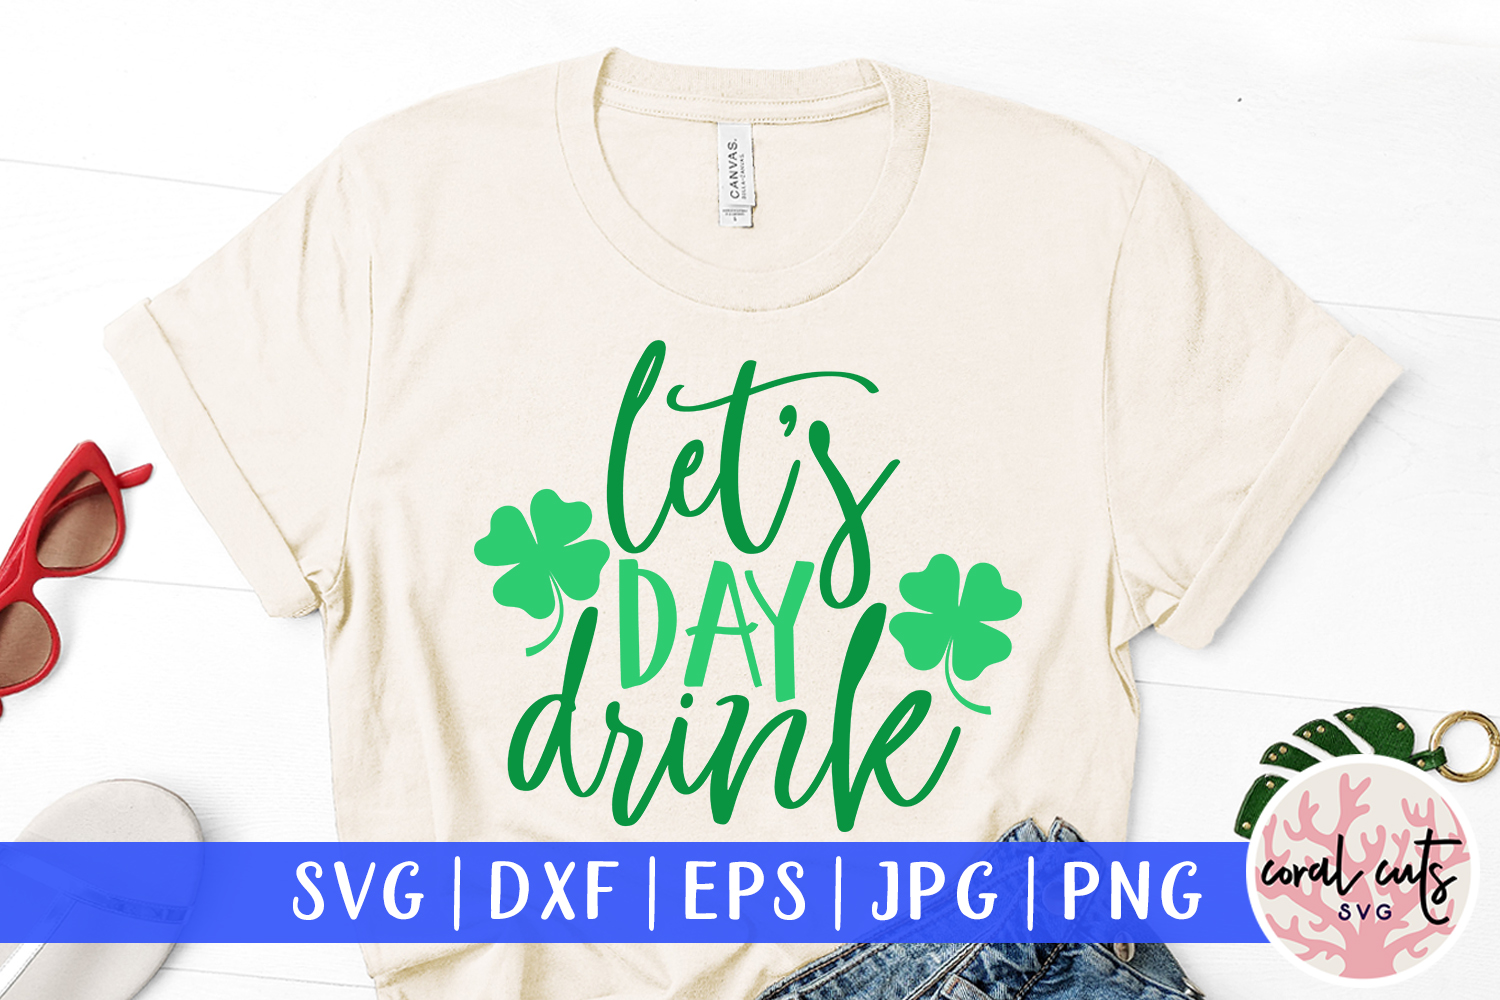 Let's day drink - St. Patrick's Day SVG EPS DXF PNG example image 1